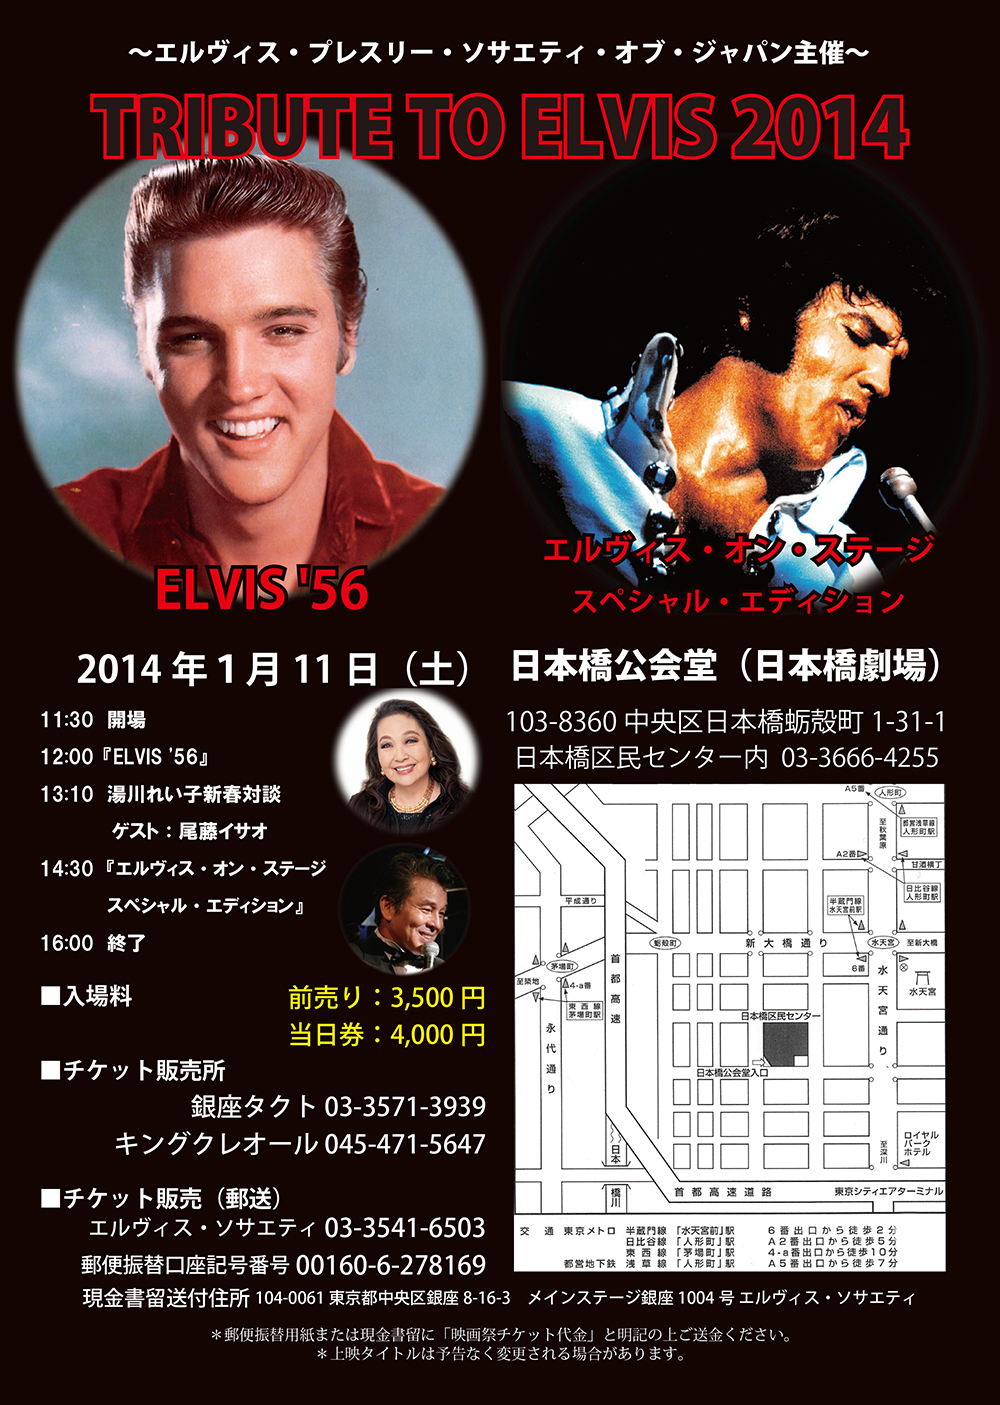 Tribute to ELVIS 2014